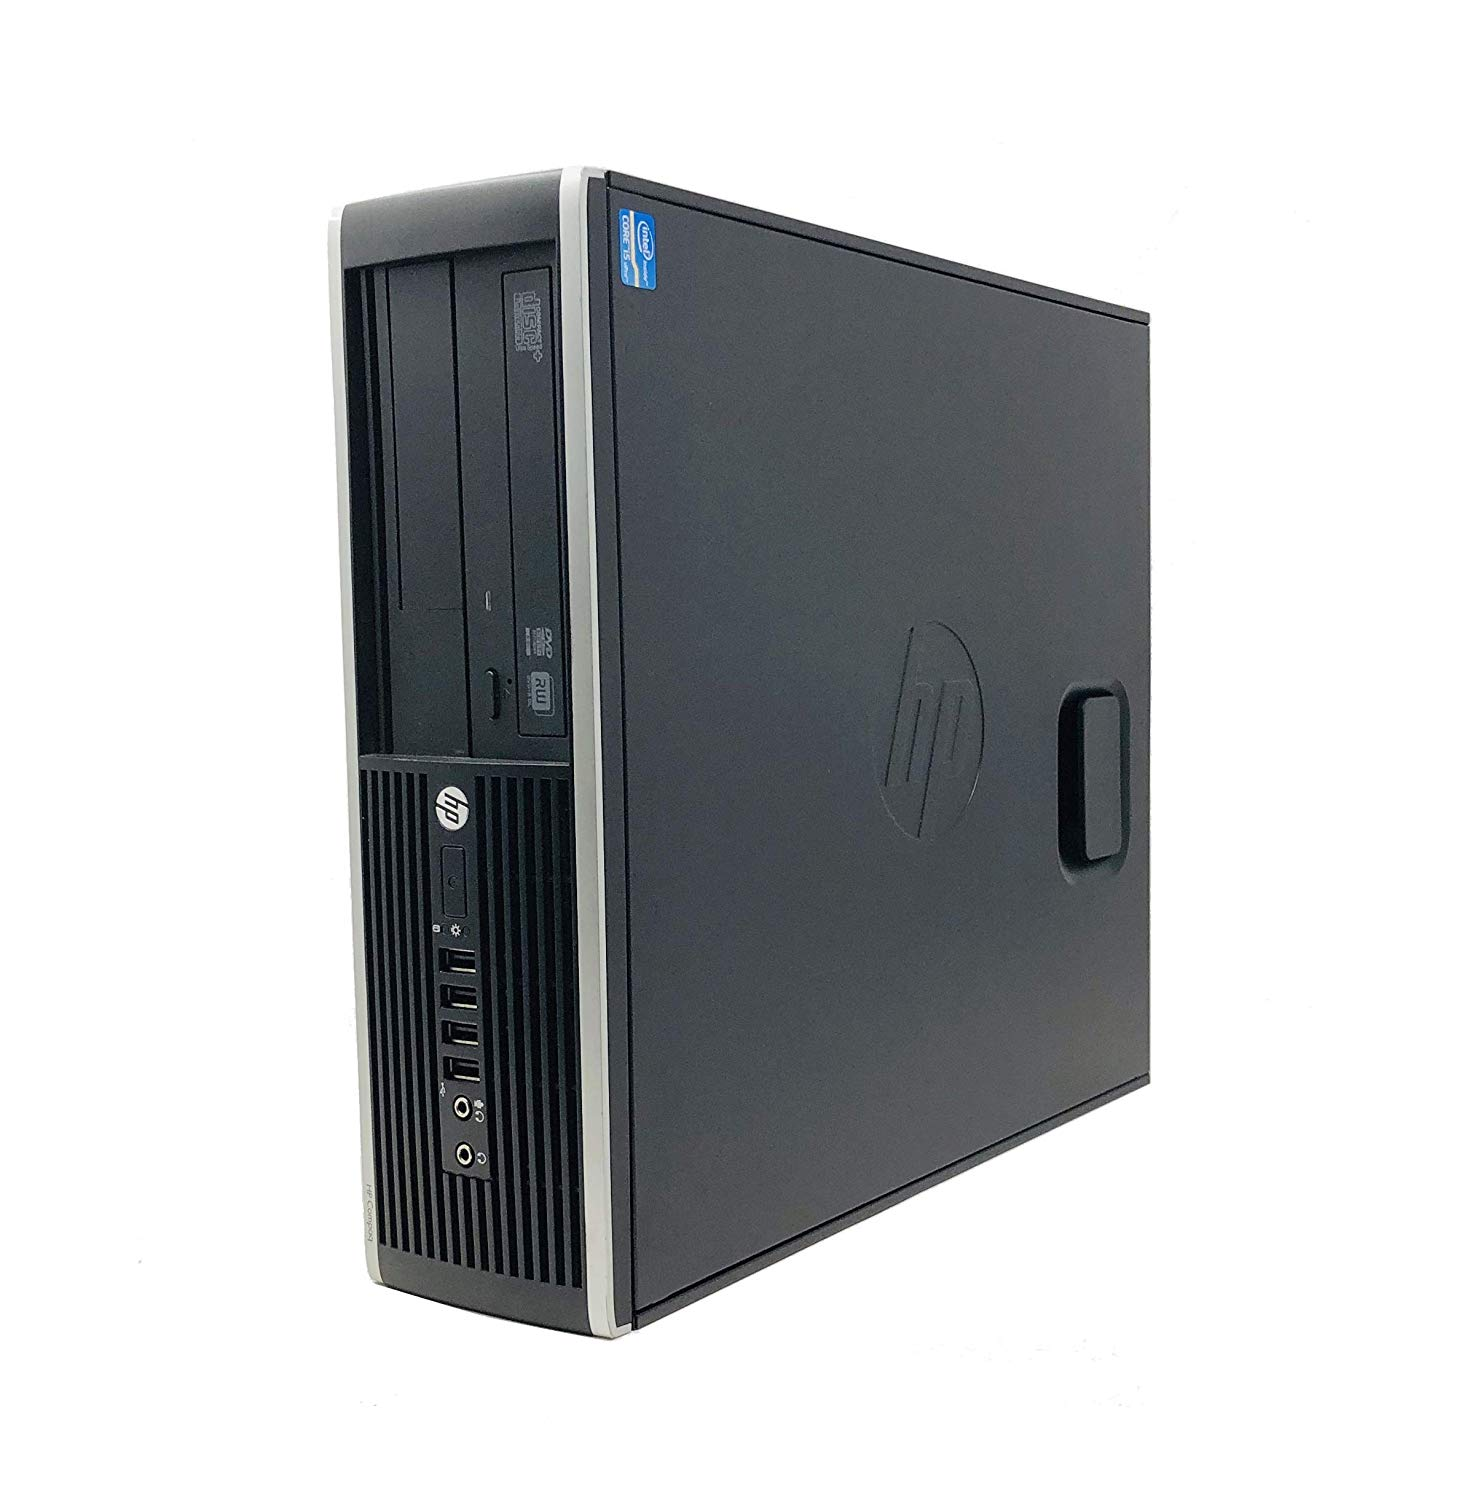 Hp Elite 8200 - Ordenador De Sobremesa (Intel  I5-2400, 8GB De RAM, Disco HDD De 250GB, Windows 7 PRO ) - Negro (Reacondicionado)